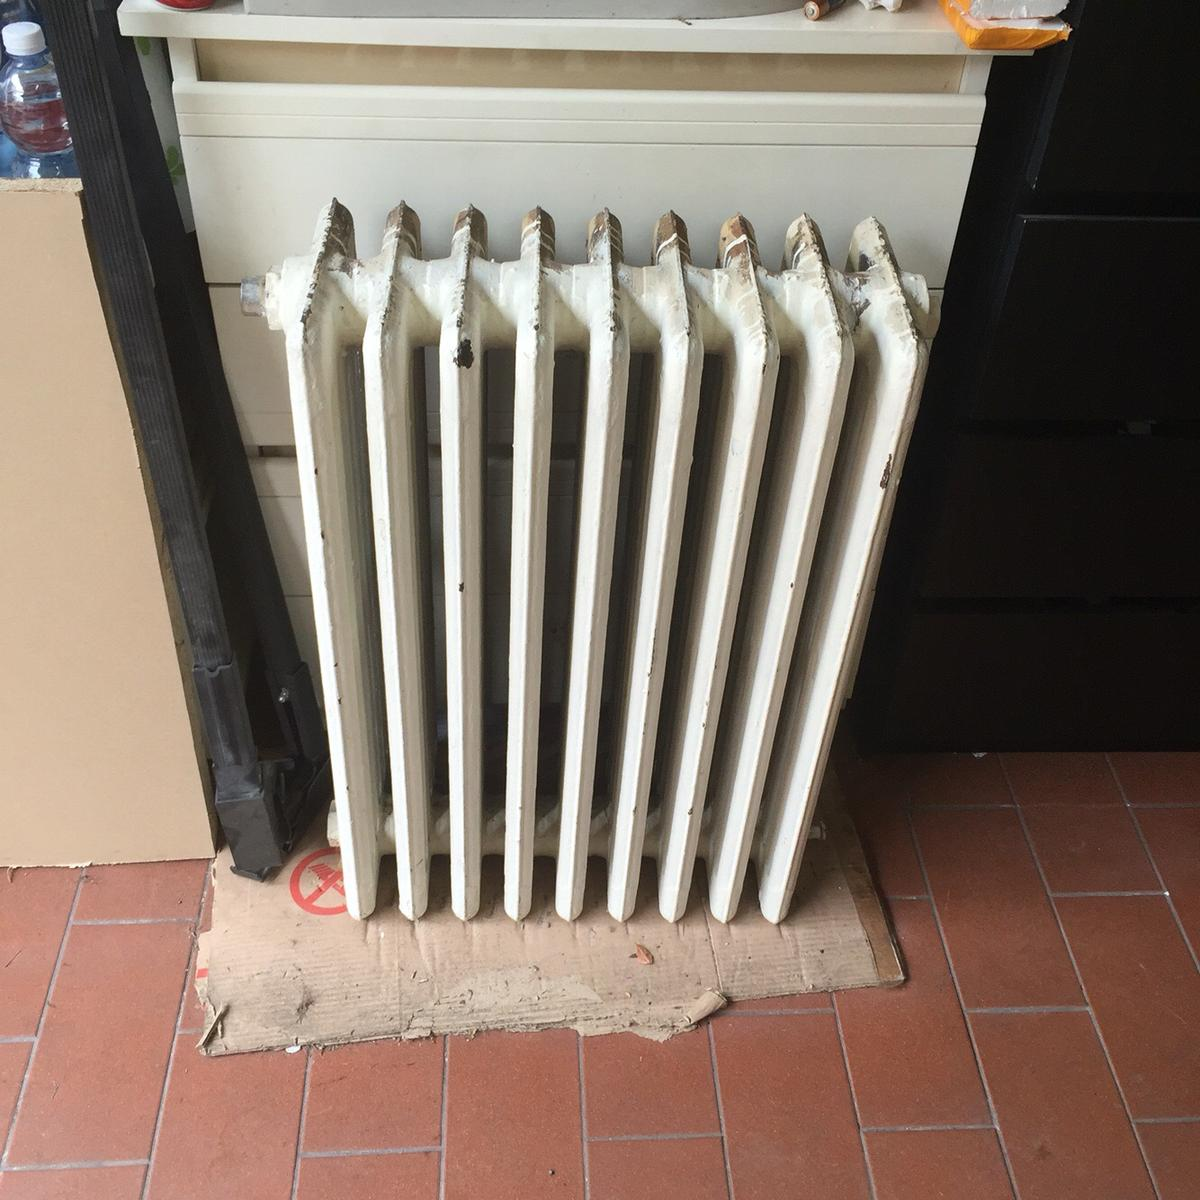 Verniciare I Termosifoni In Ghisa termosifoni in ghisa in 00151 roma for €30.00 for sale | shpock